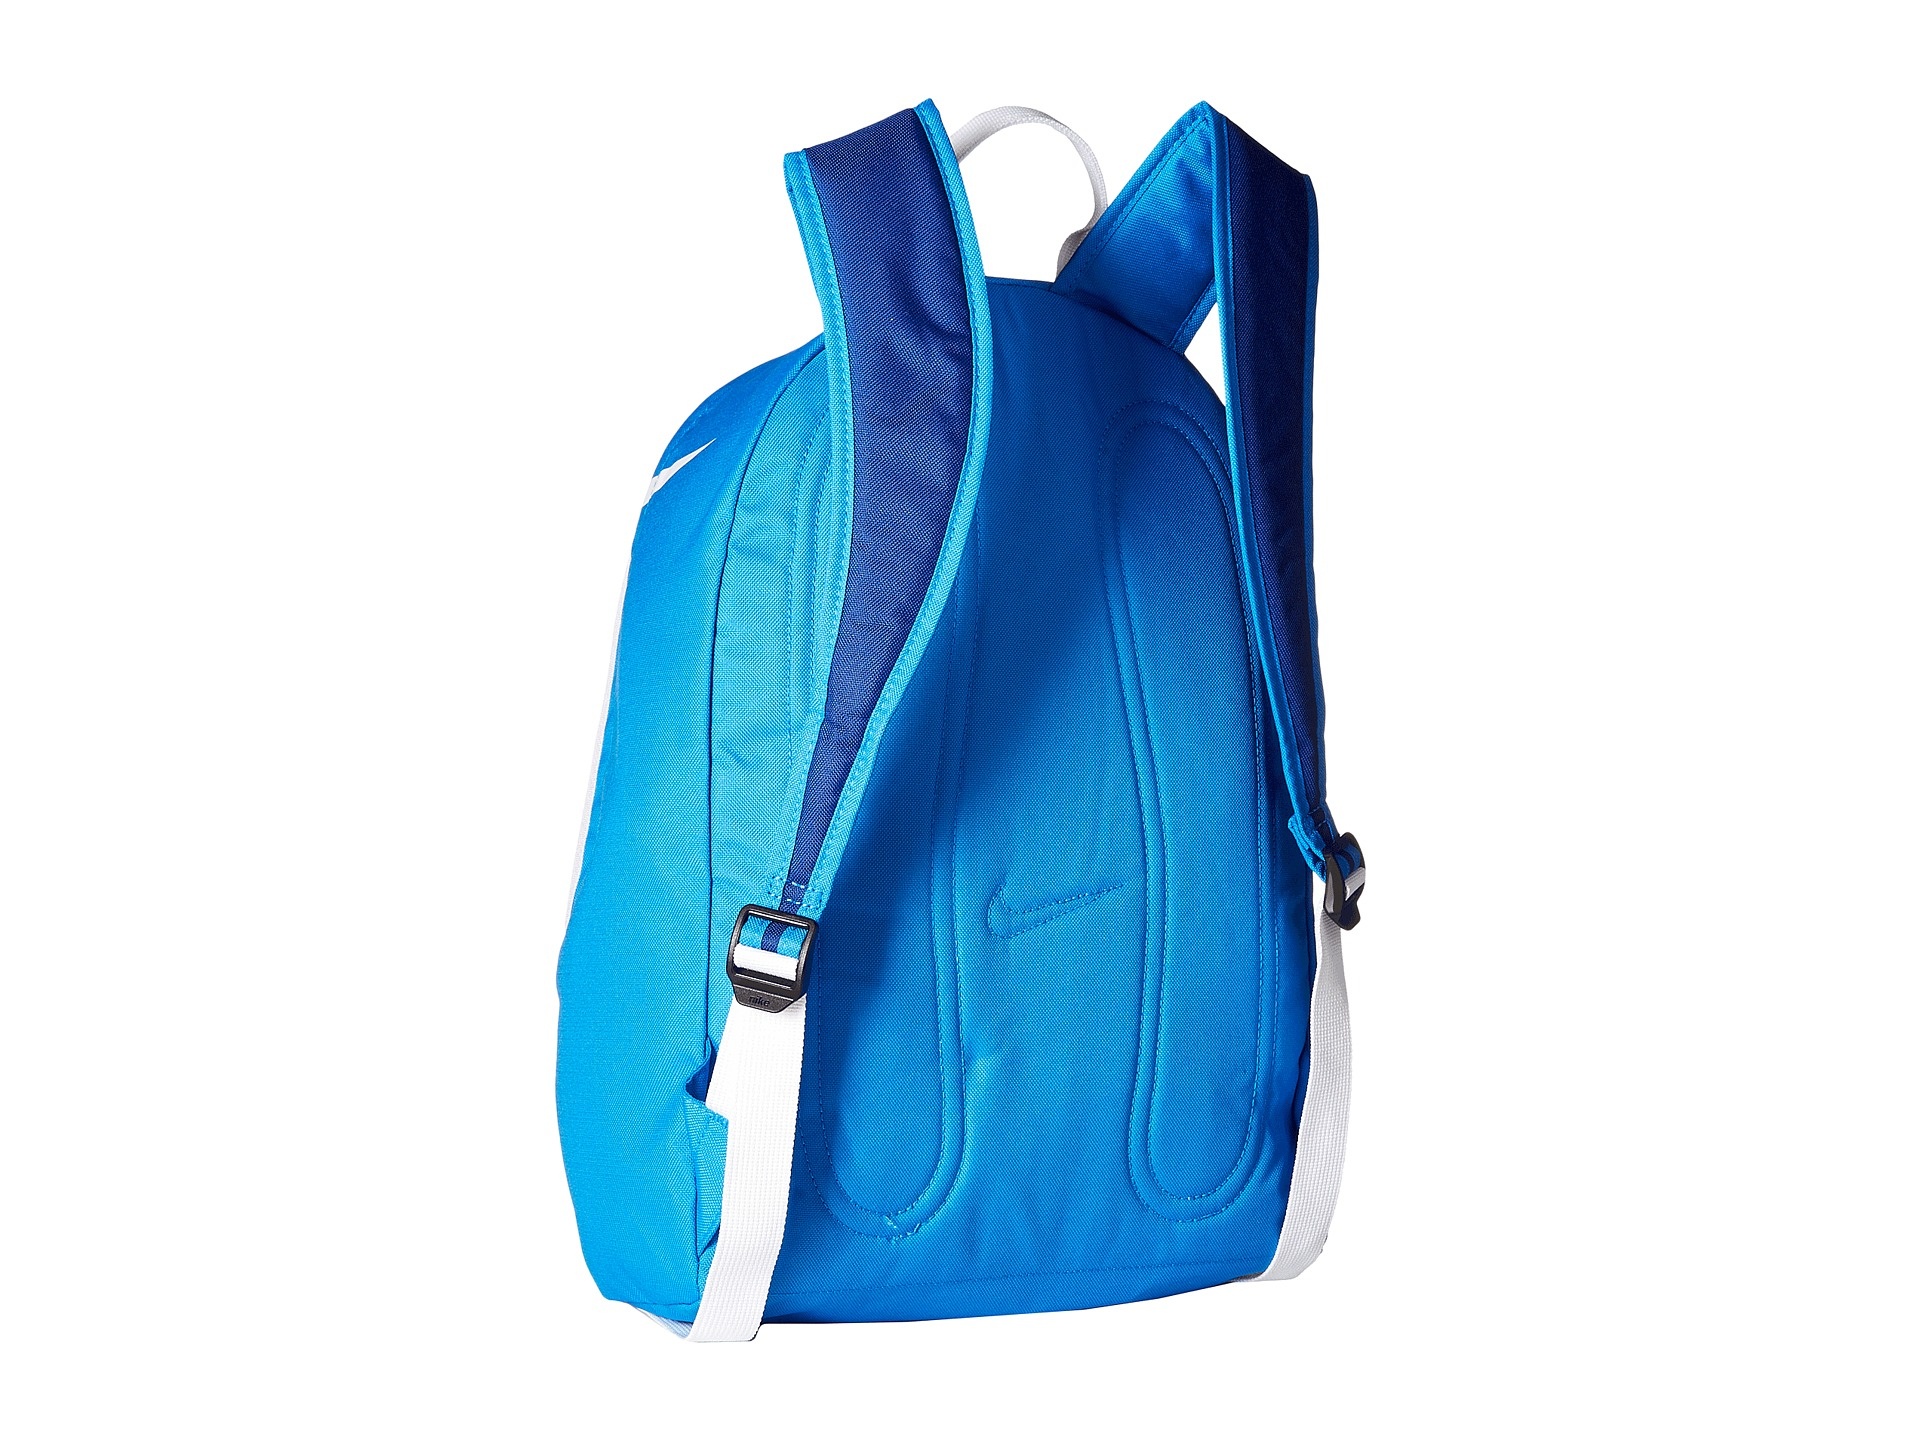 Lyst - Nike Young Athletes Halfday Bts Backpack in Blue for Men c993cd874d